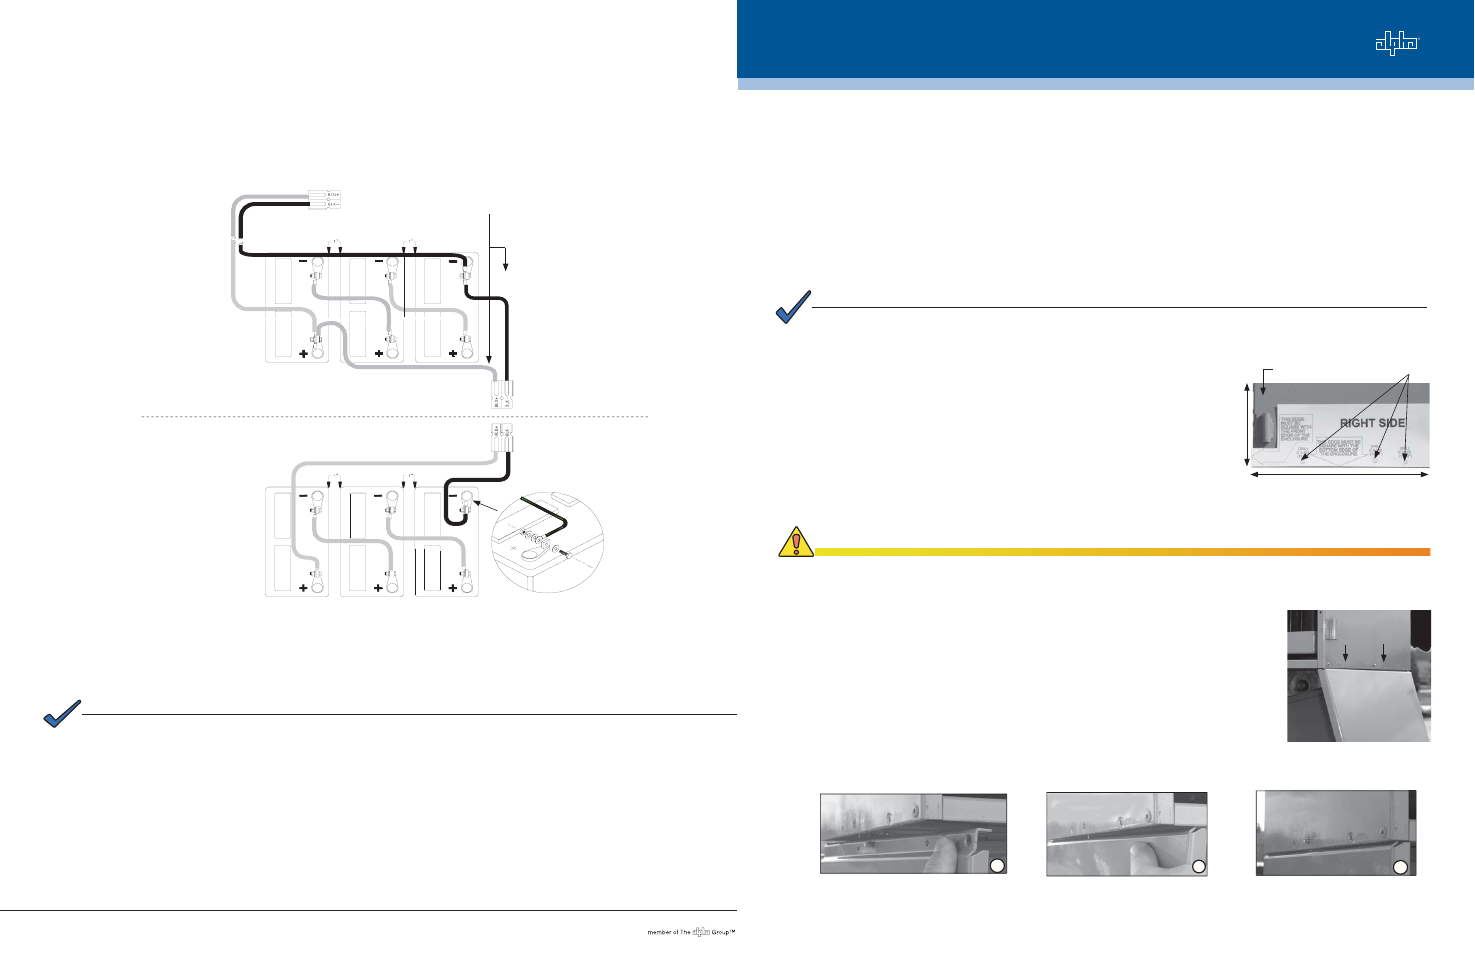 Alpha Technologies Undermount Pwe Series User Manual 2 Pages Wiring Diagram